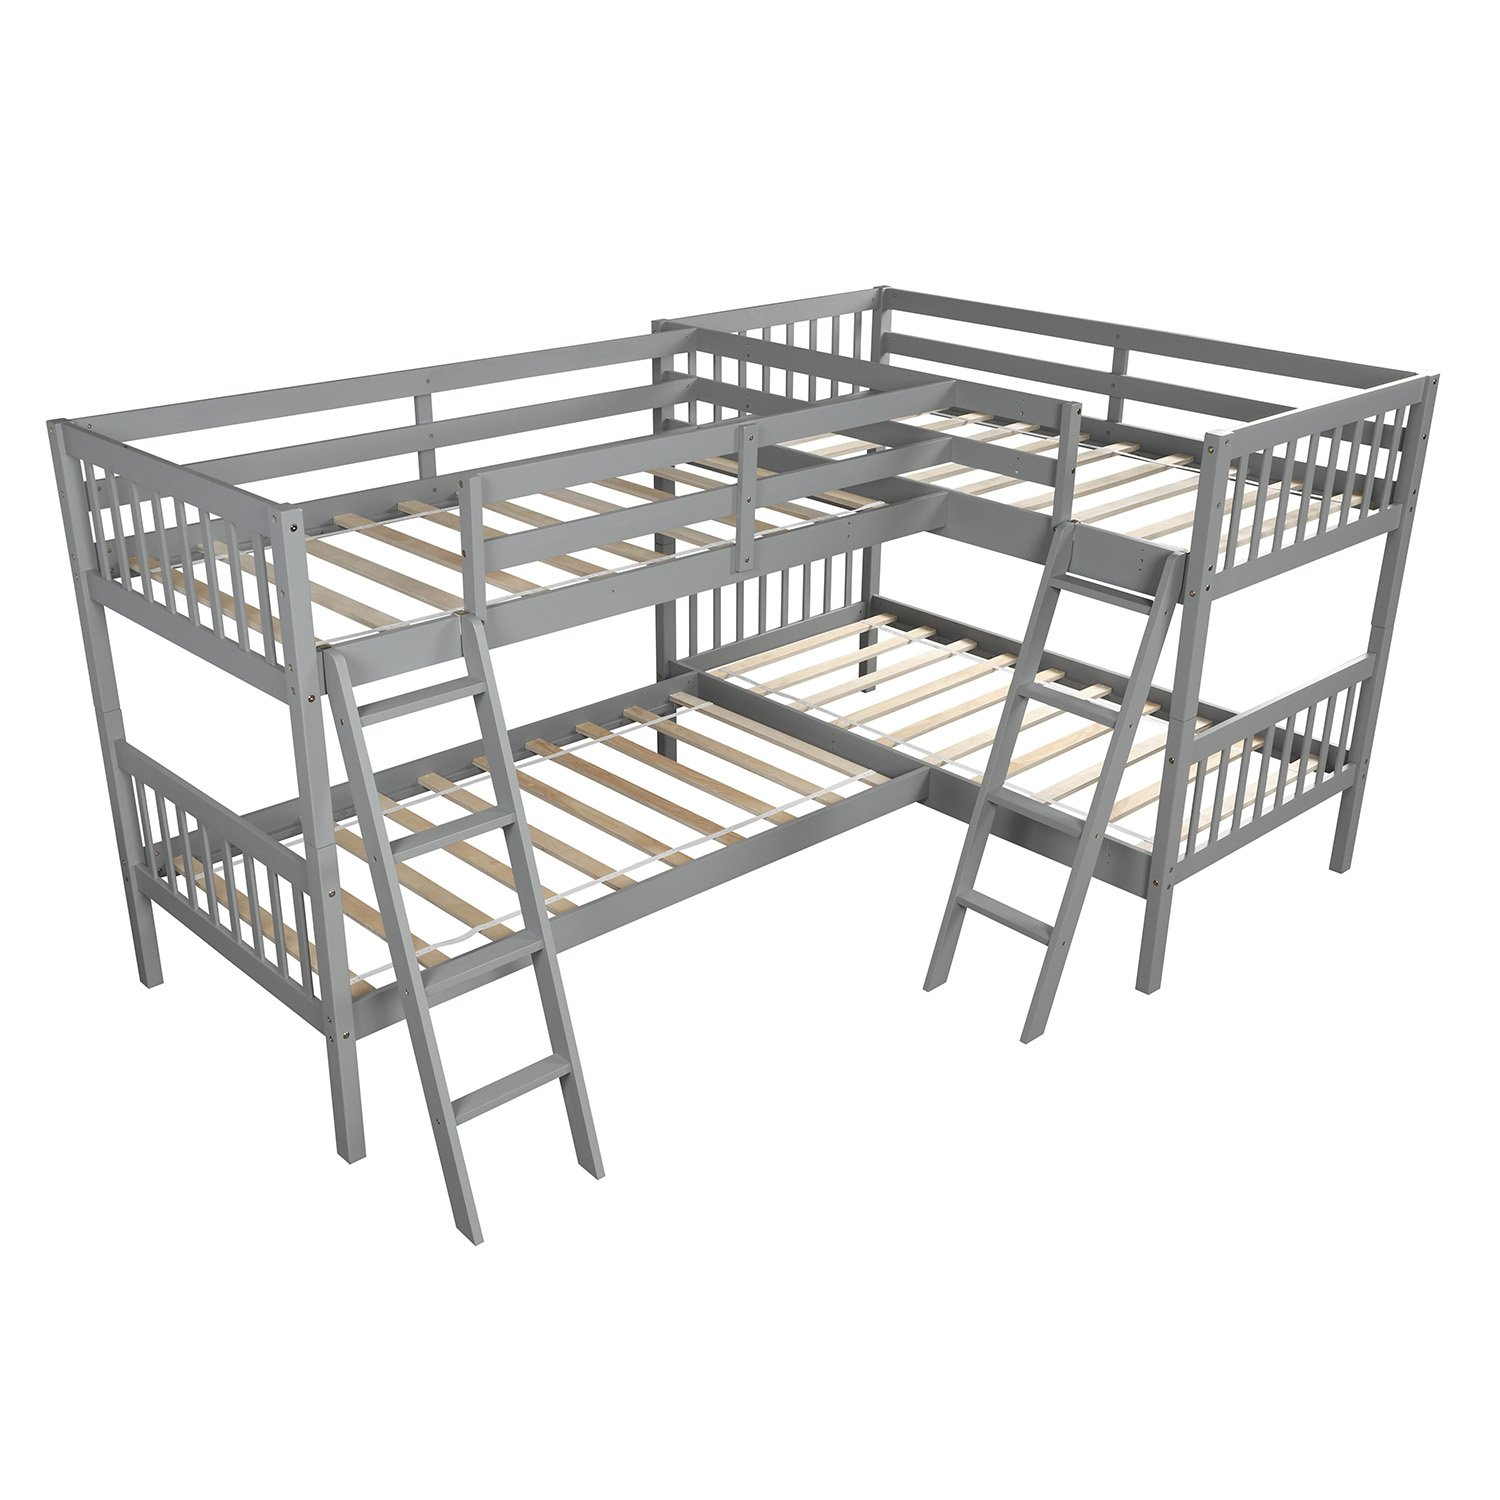 L Shaped Bunk Bed Twin Size